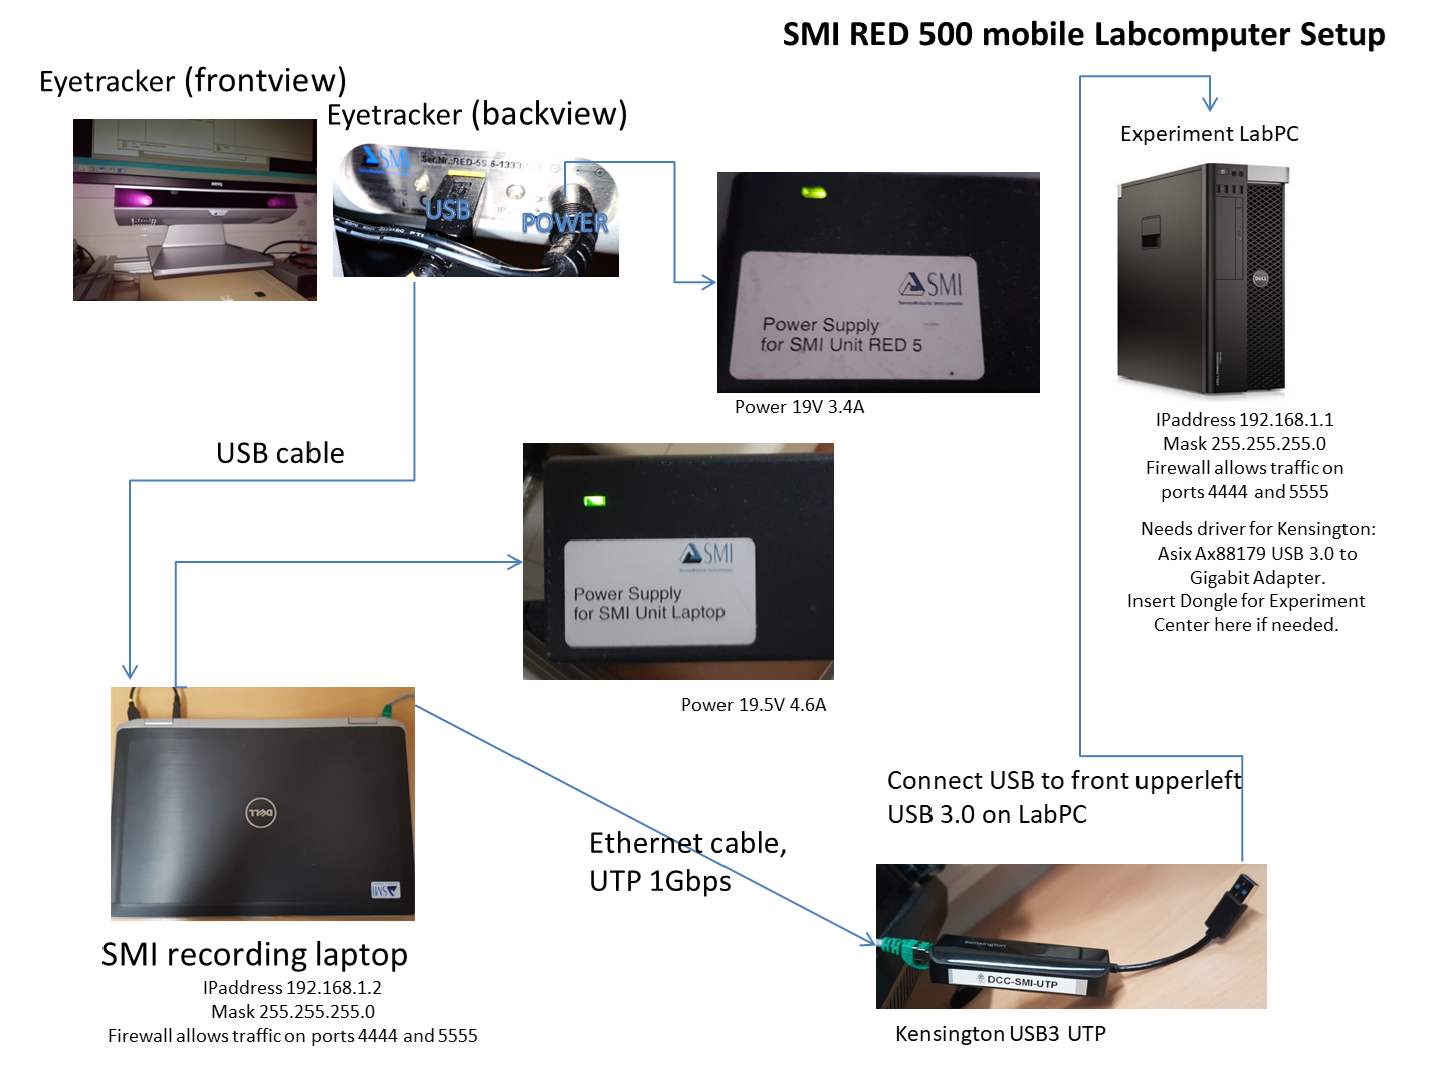 SMI RED 500 lab setup (DCC, BSI is similar)